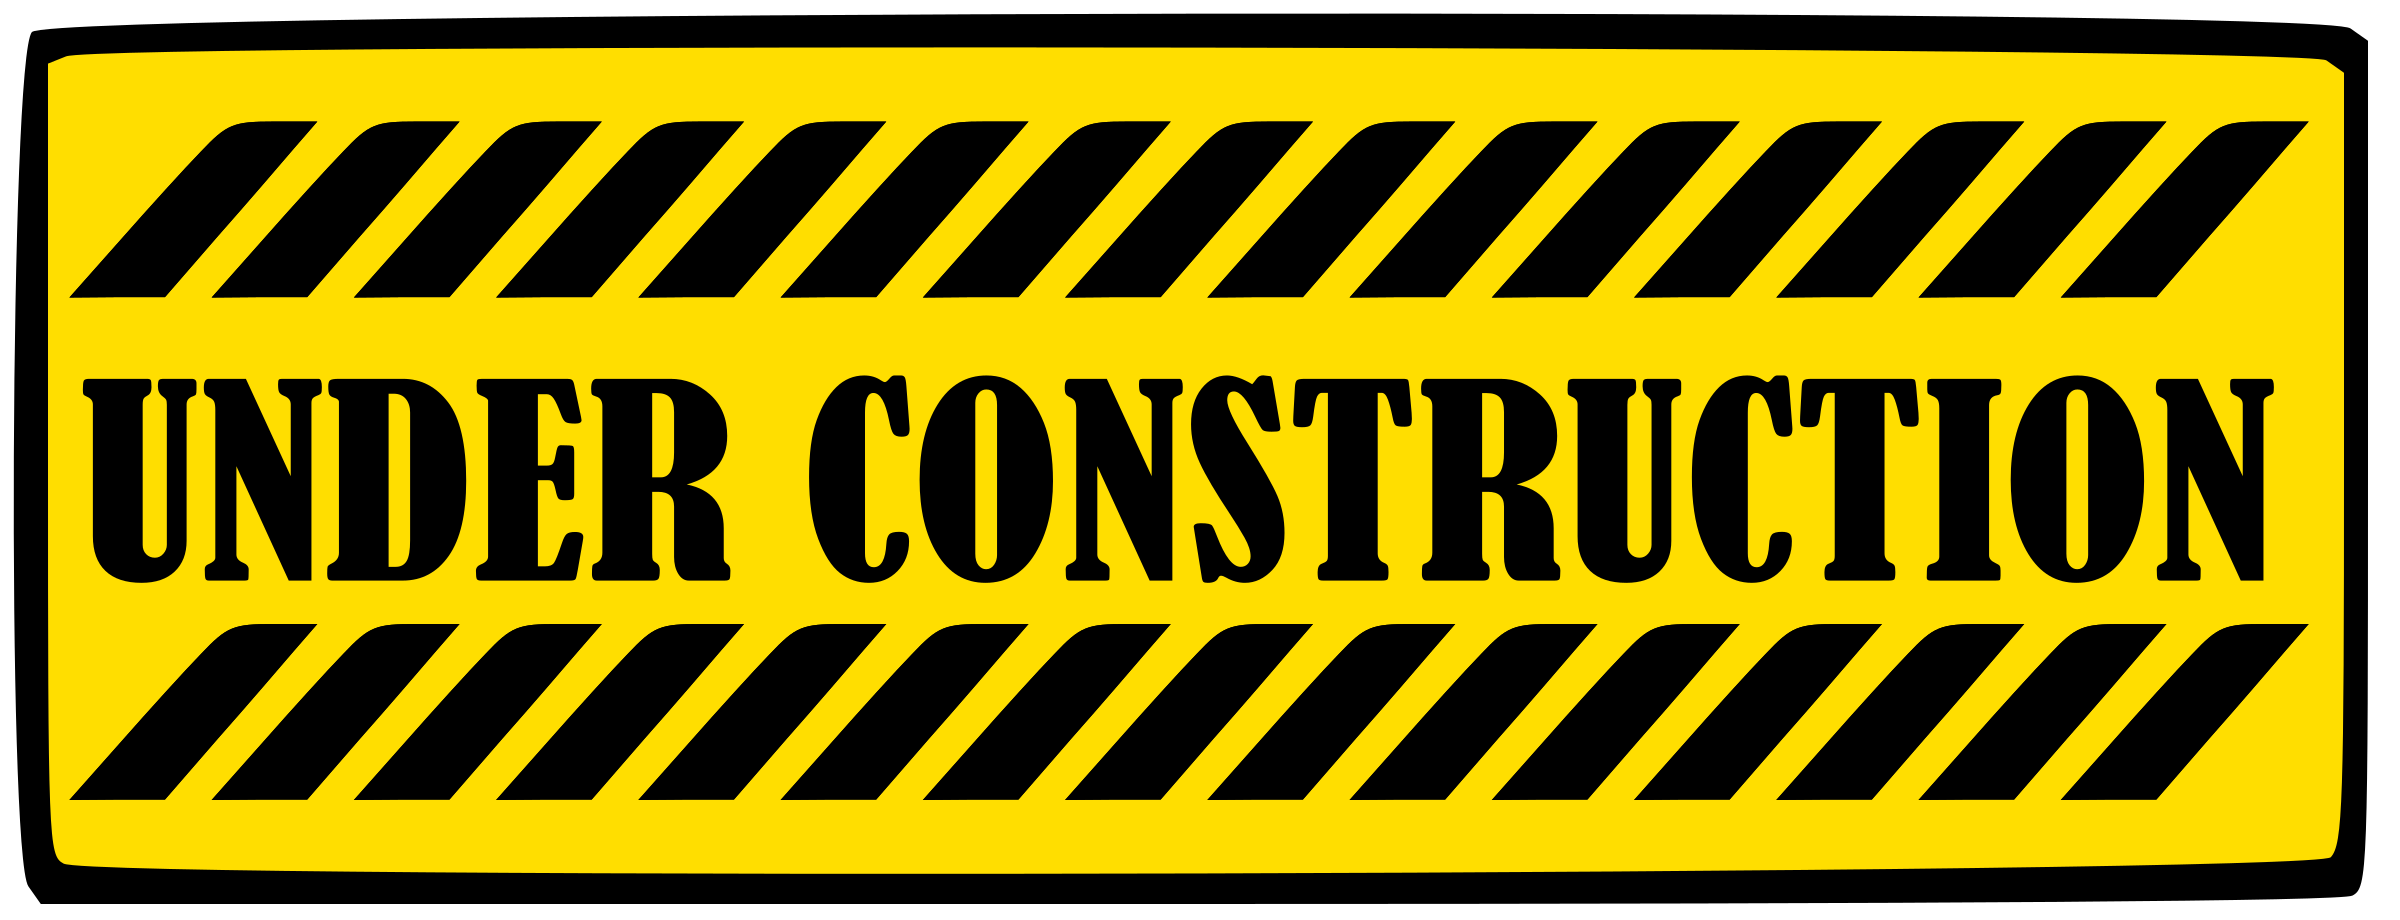 Building Clipart Under Construction Clipart Gallery ~ Free Clipart.